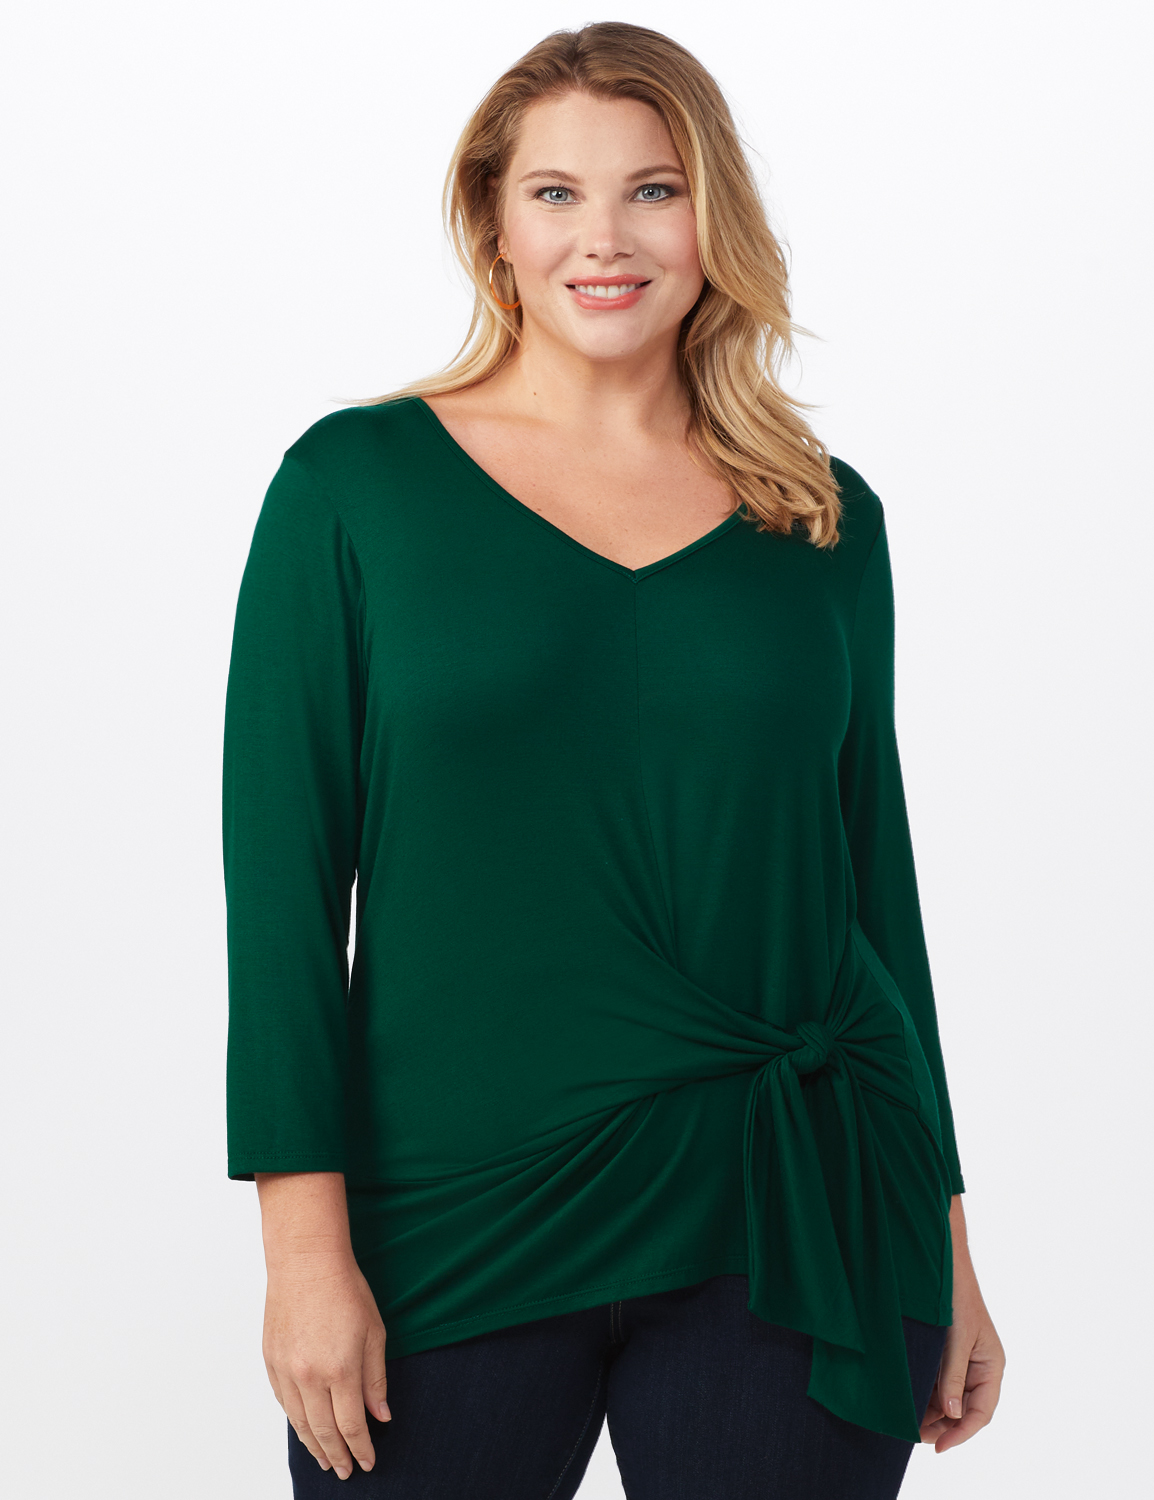 V-Neck Tie Front Knit Top - Plus -Hunter green - Front